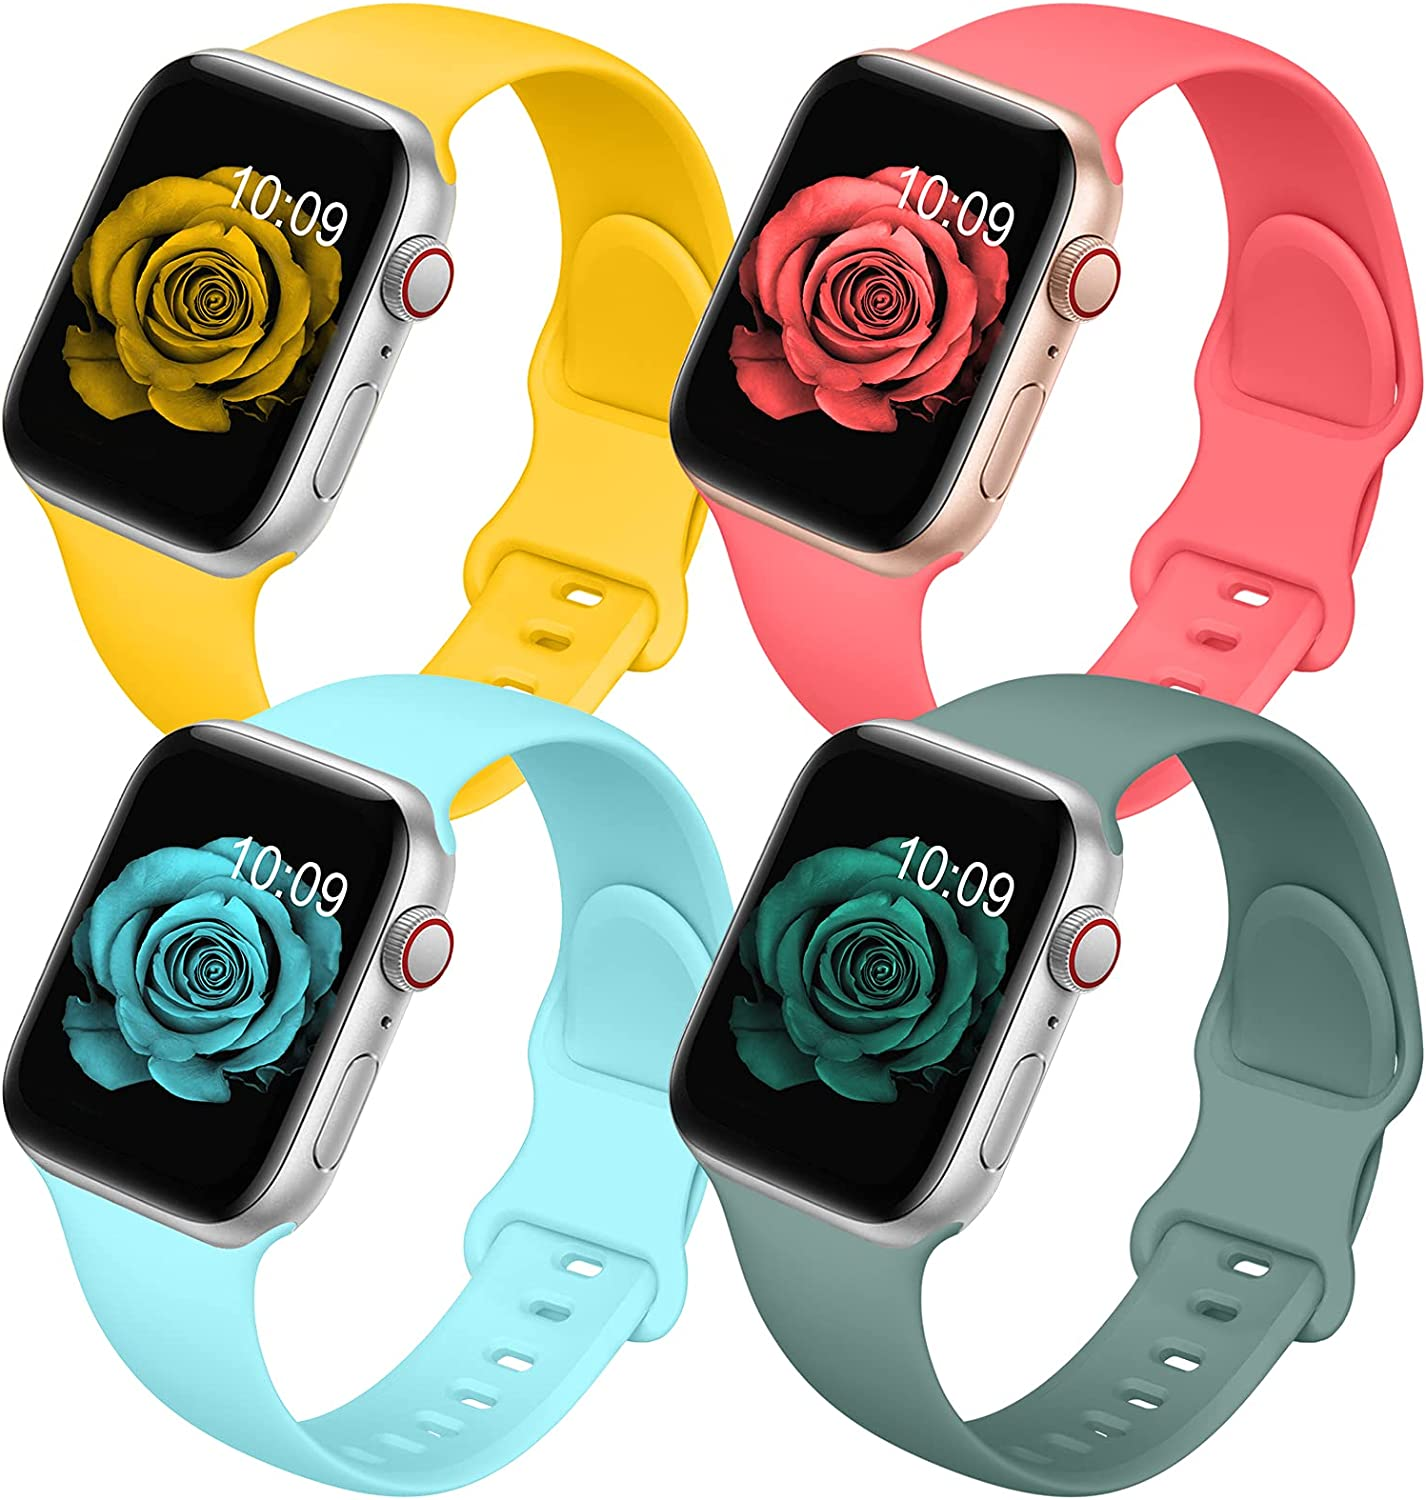 4 Pack Bands Compatible with Apple Watch Band 38mm 40mm 42mm 44mm for Women Men, Soft Silicone Sport Replacement Watch Strap for iwatch Series SE/ 6/5/4/3/2/1 Yellow/Sky Blue/Rose/Pine Green